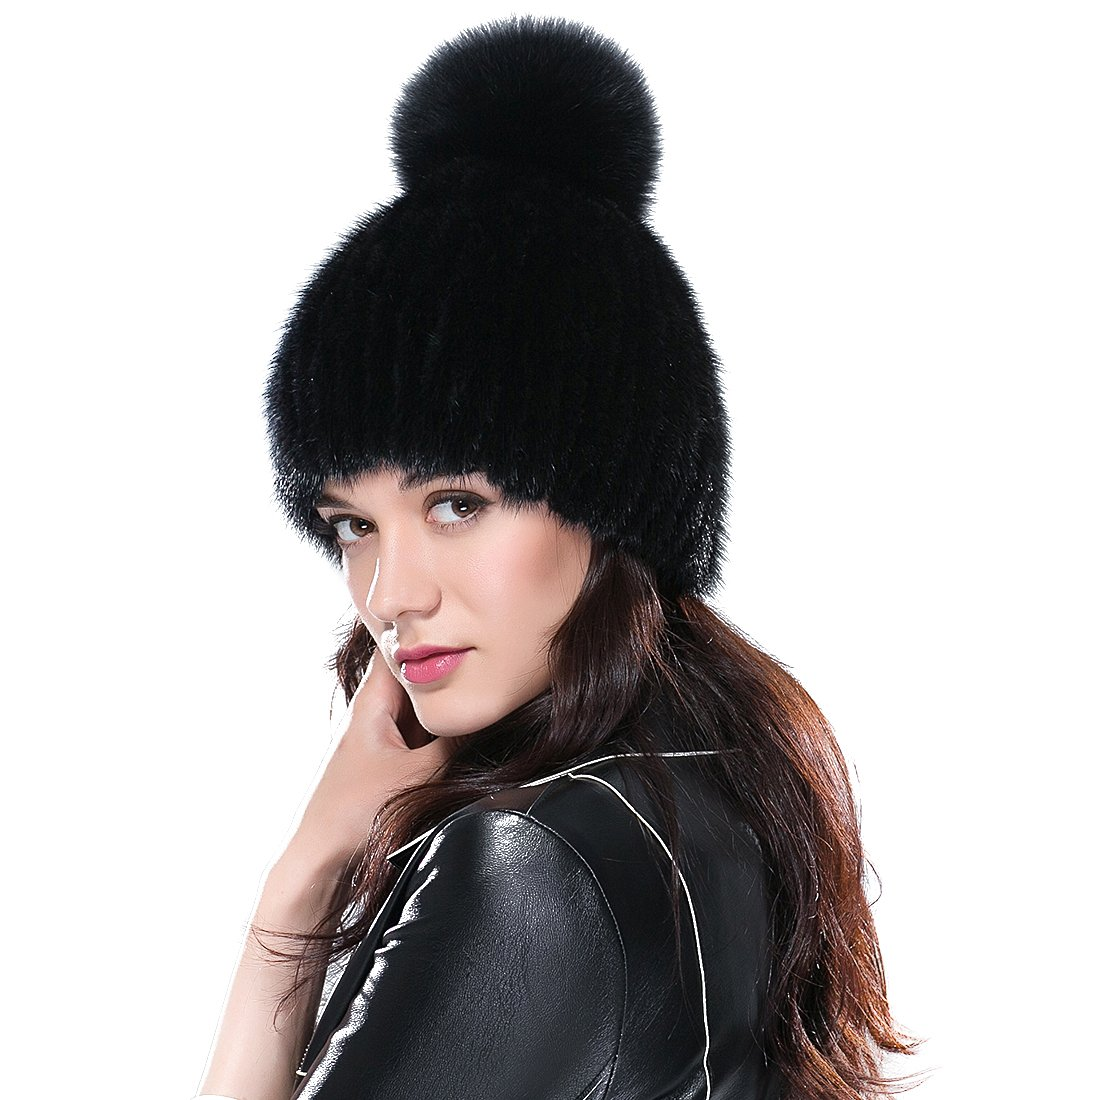 URSFUR Women's Knit Mink Beanie with Fox Pom Pom Black